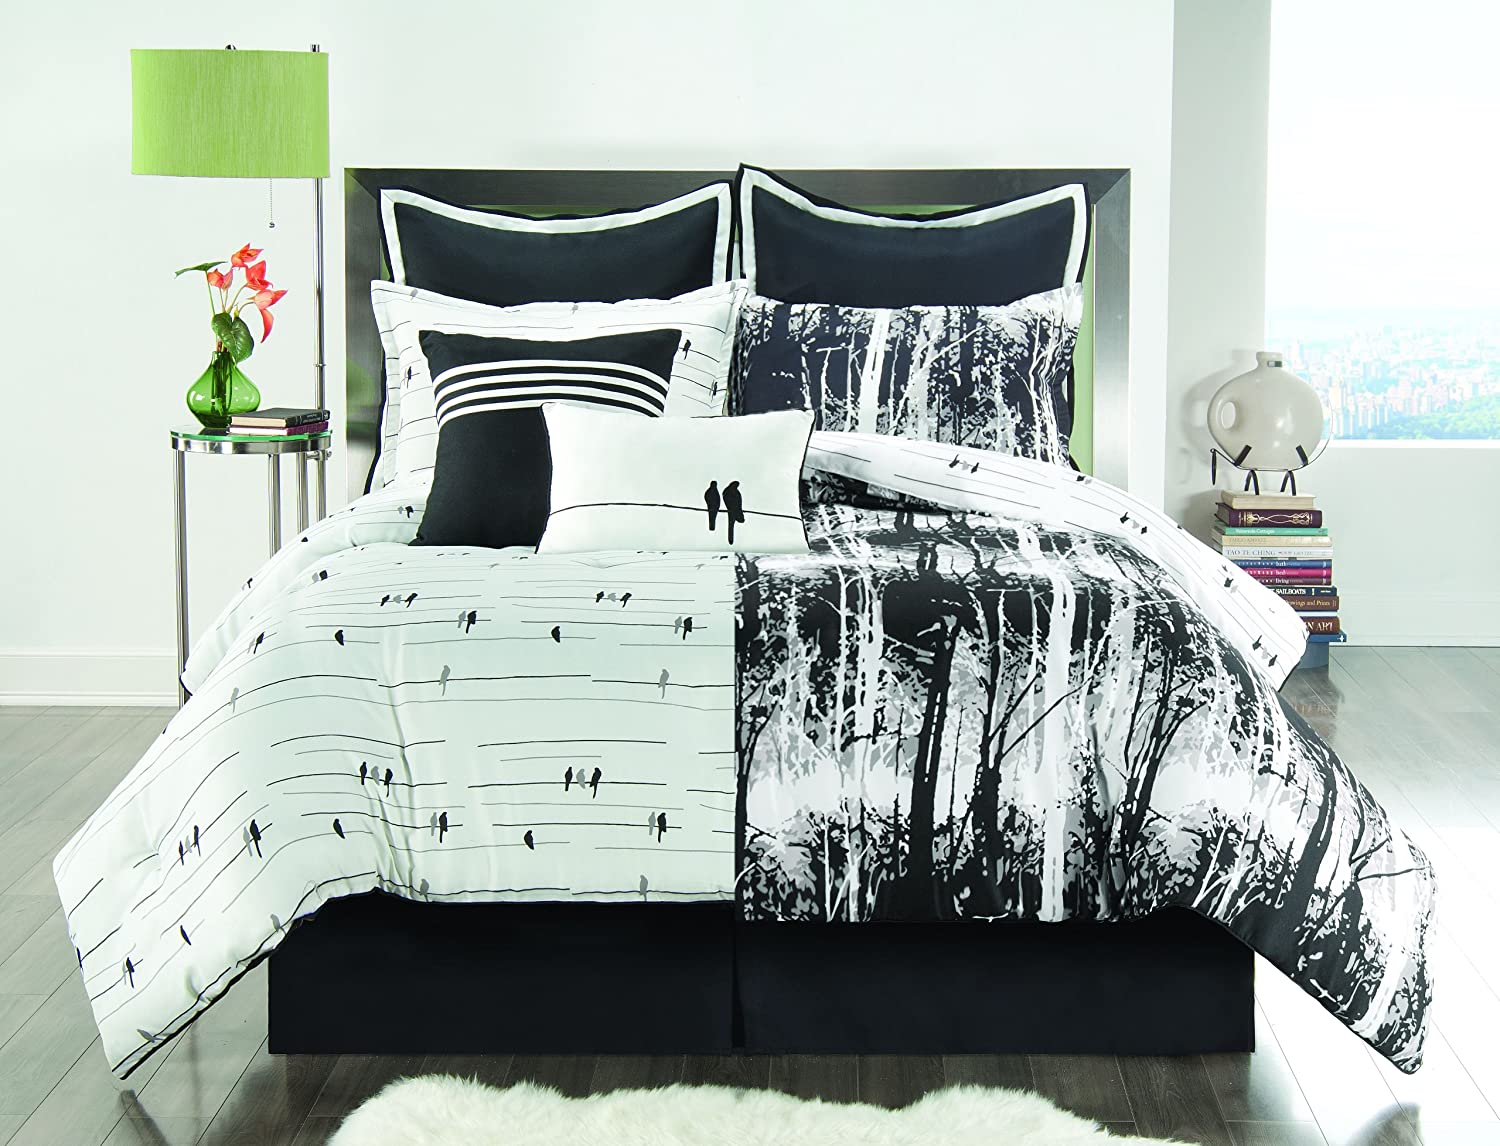 amazoncom sunset and vine woodland 6piece xl twin comforter set black white home u0026 kitchen